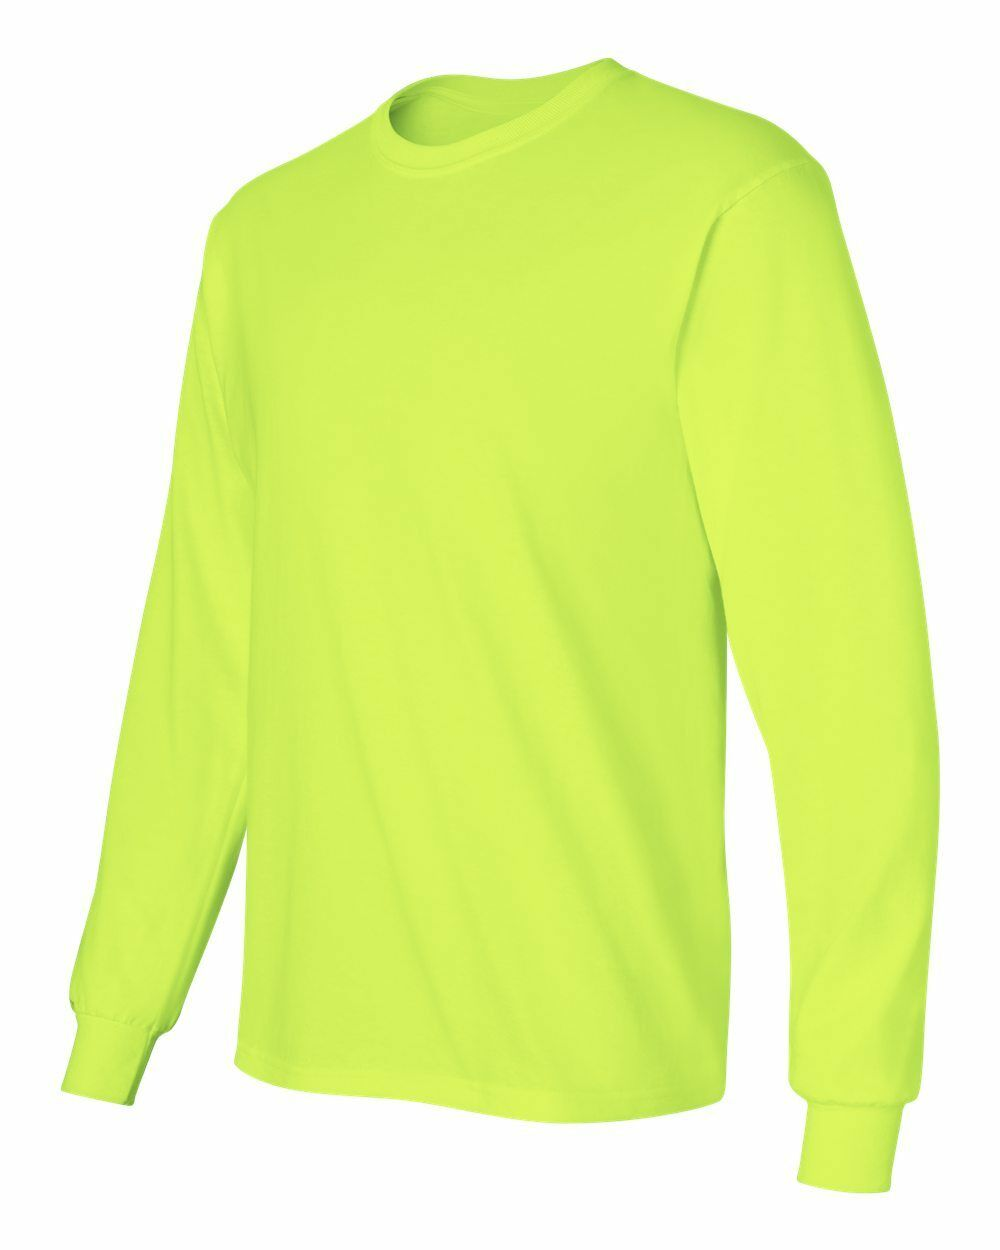 3 Gildan Long Sleeve SAFETY GREEN Adult High Visibility T-Shirts Sizes  S-5XL